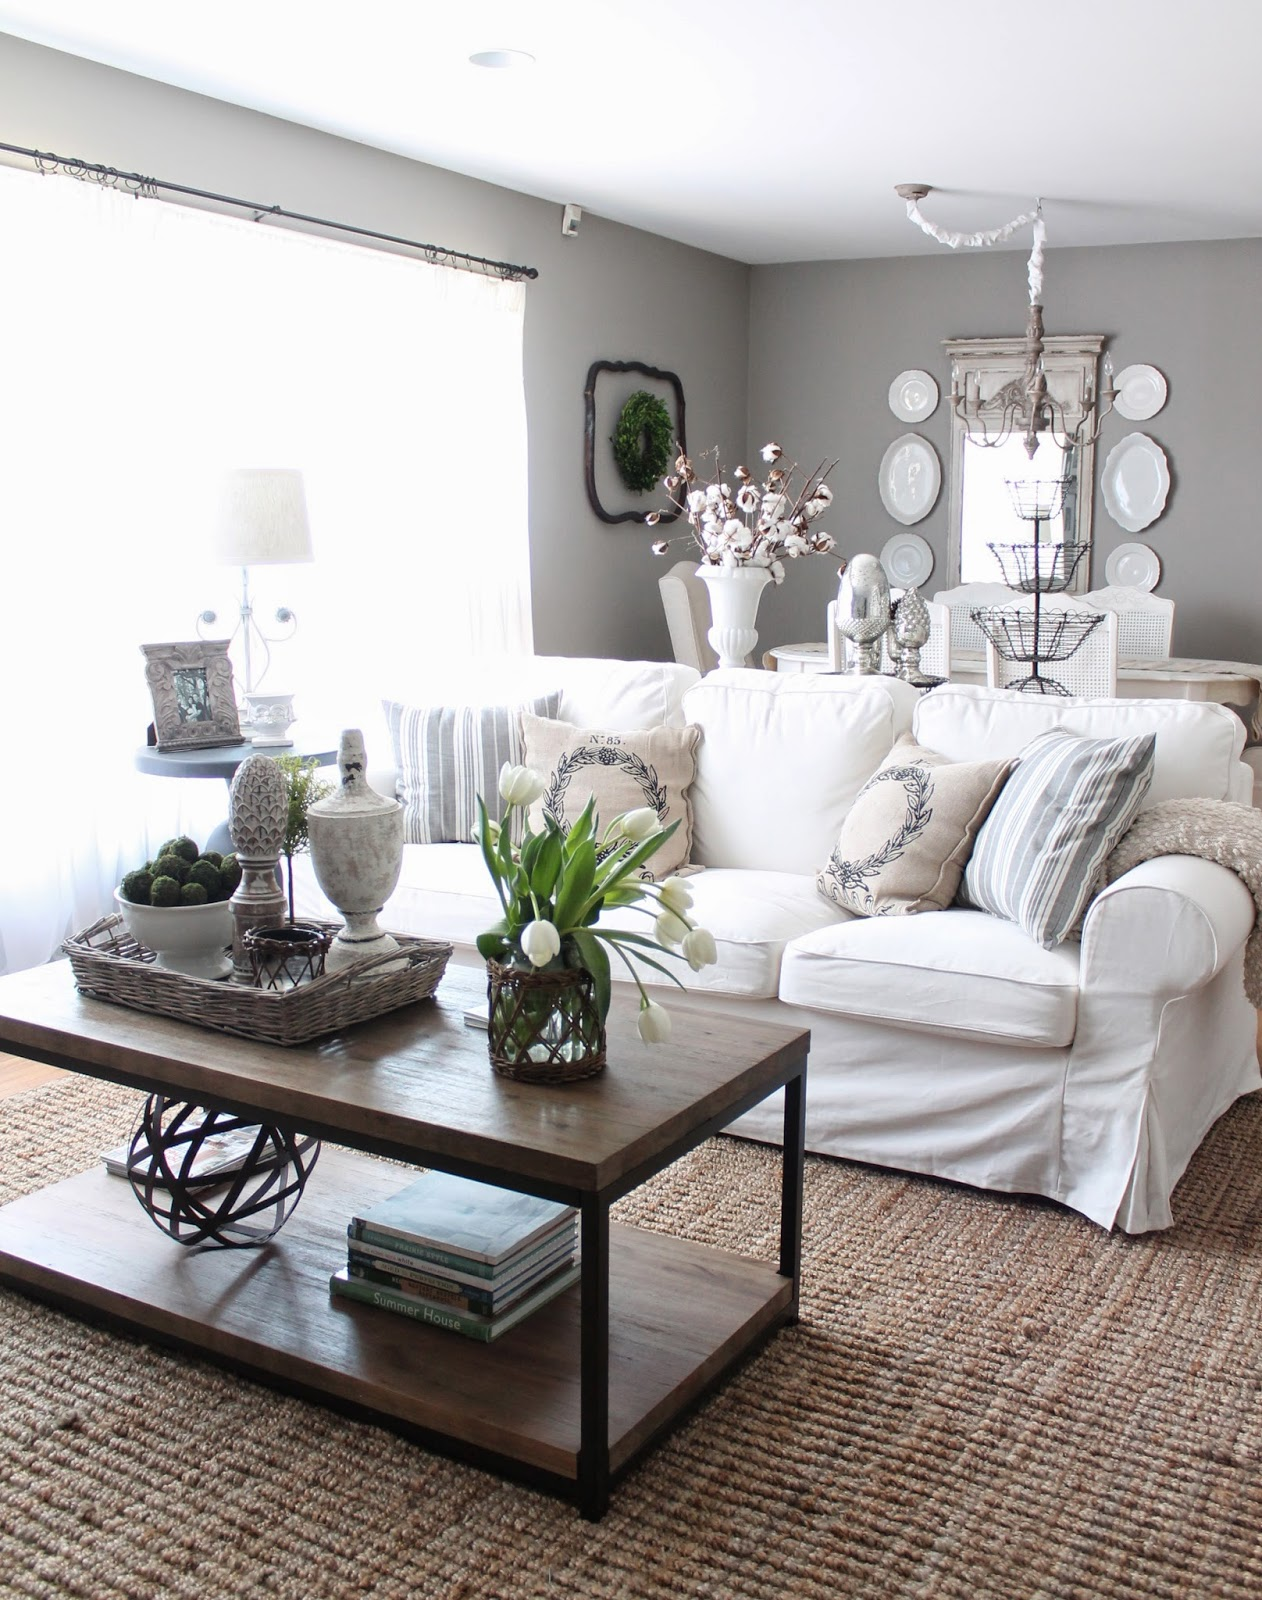 12th and white makeover round up our house six months later. Black Bedroom Furniture Sets. Home Design Ideas